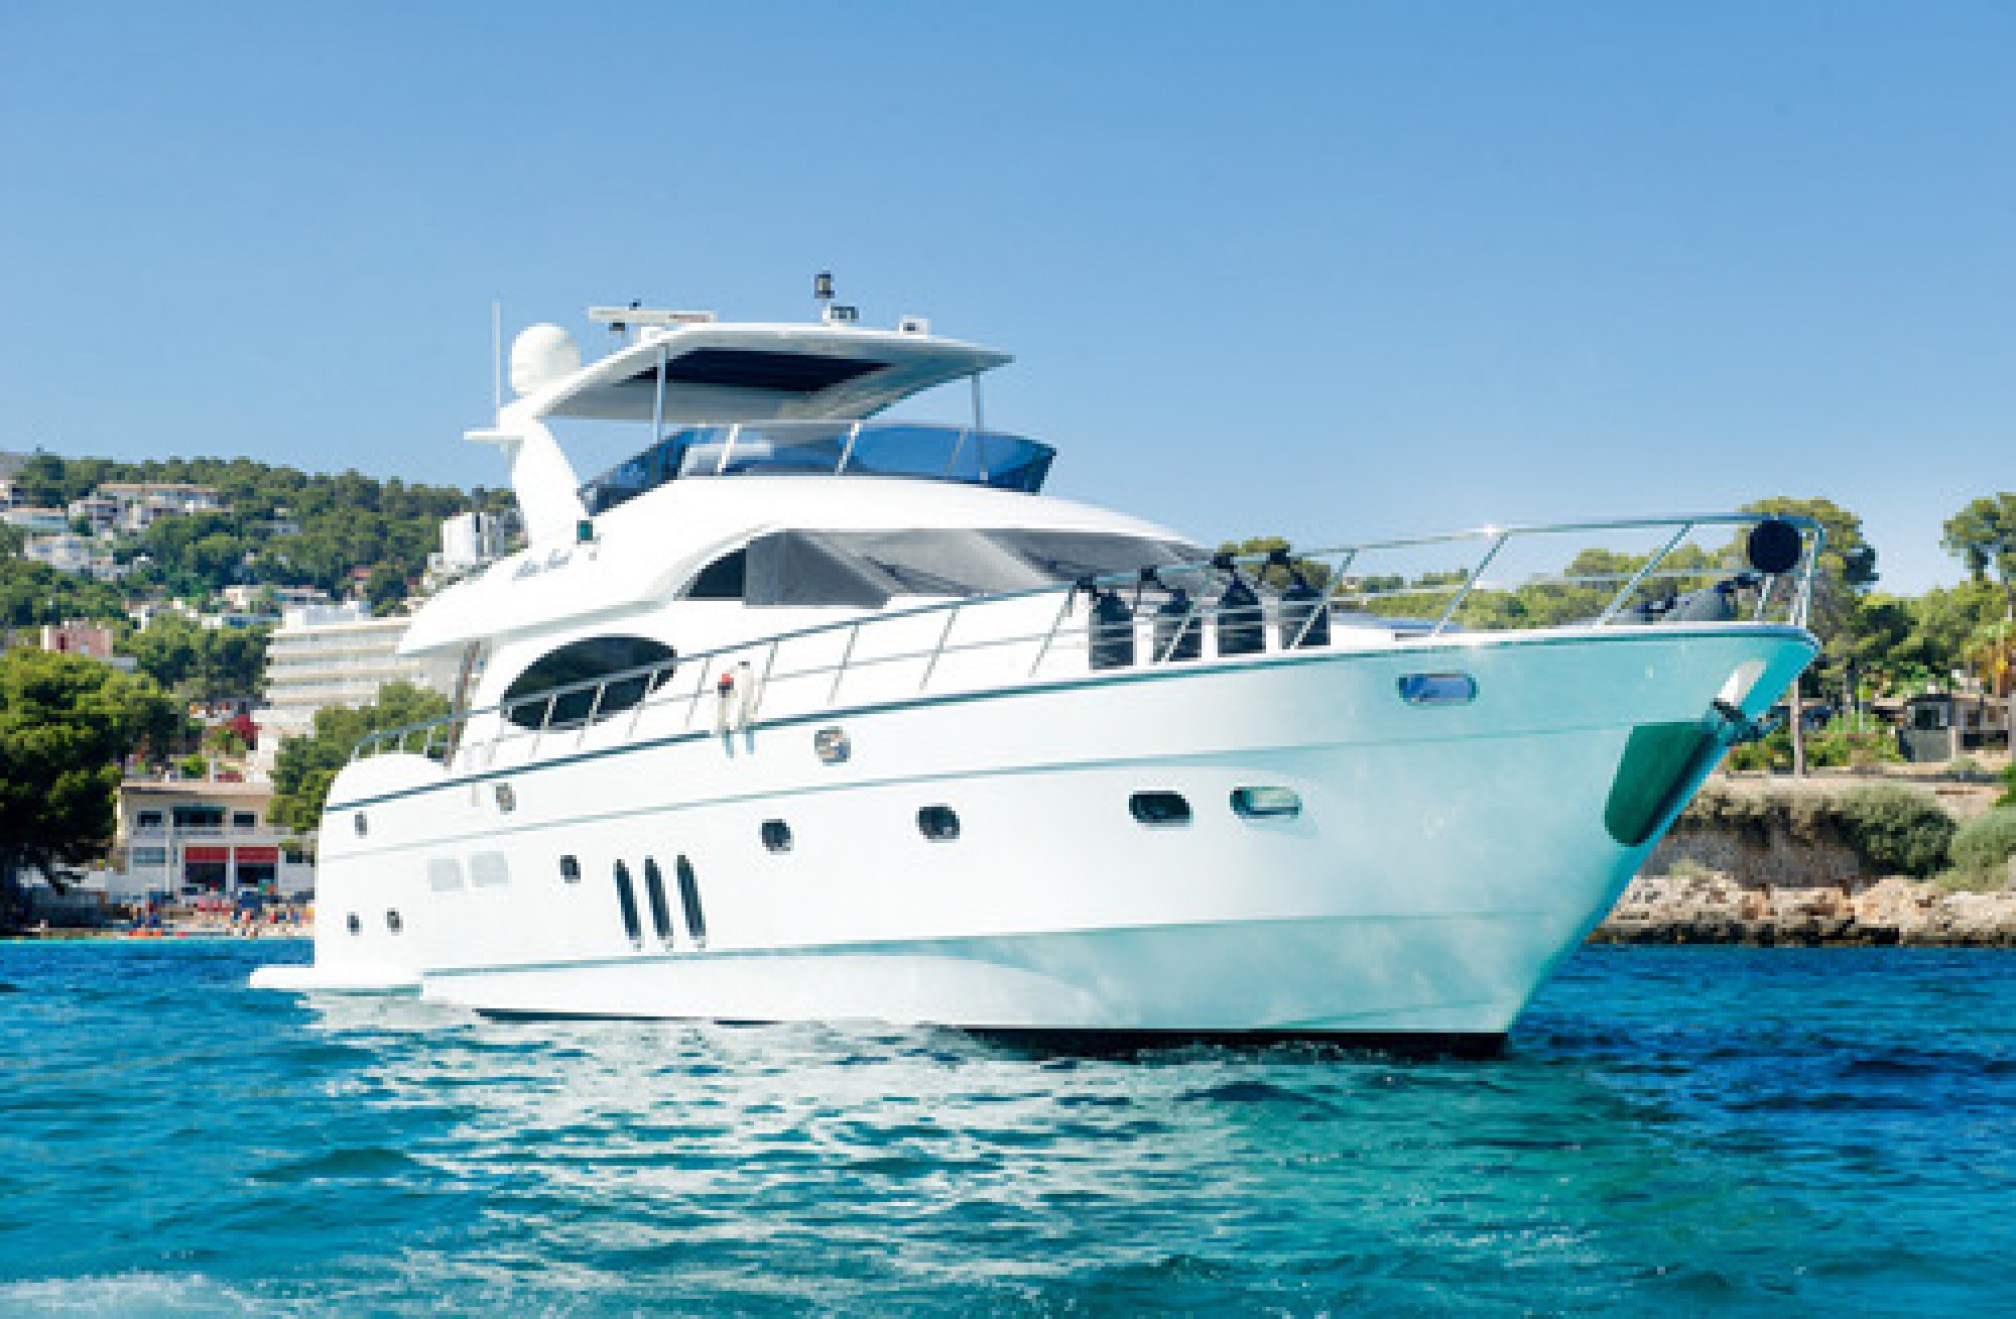 Rental yacht Midas Touch 8 pax anchored